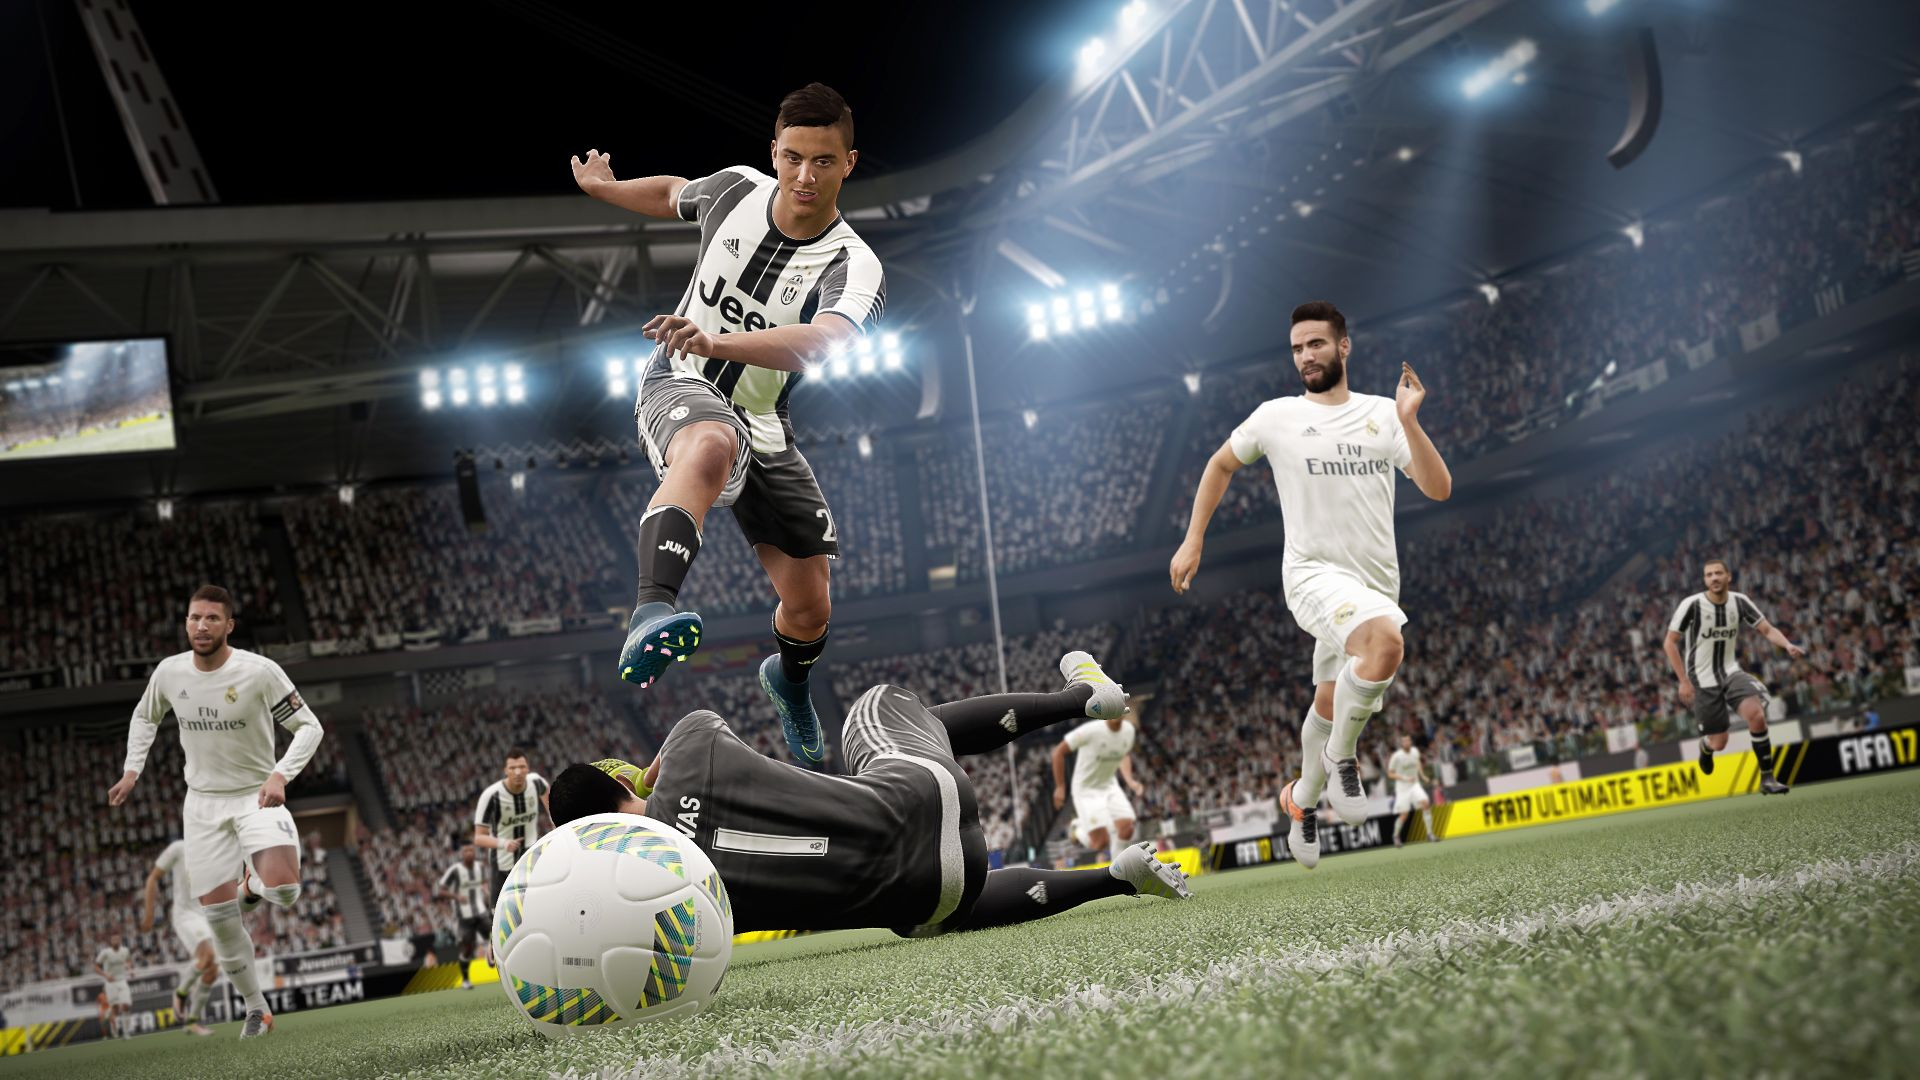 https://data2.origin.com/content/dam/originx/web/app/games/fifa/fifa-17/screenshots/fifa-17/JuvVsRM_pdp_screenhi_3840x2160_en_ww.jp